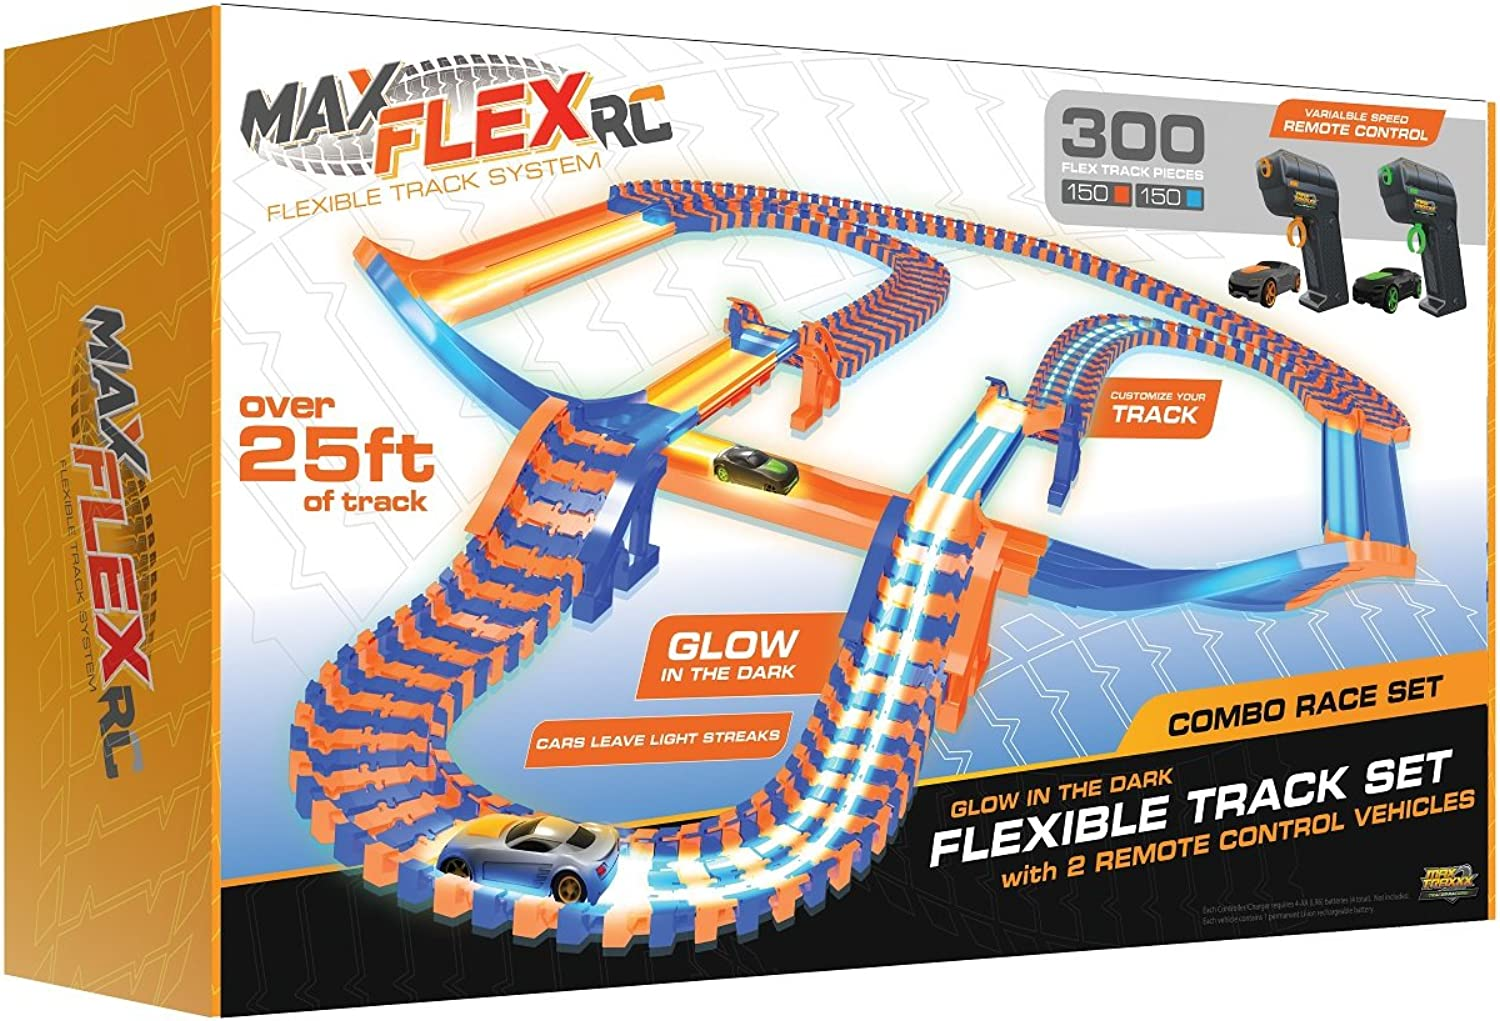 Max Flex Combo 300 Award Winning R C Light Trace Technology Glow in The Dark Flexible Track System with 2 1 64 Scale Remote Control Cars